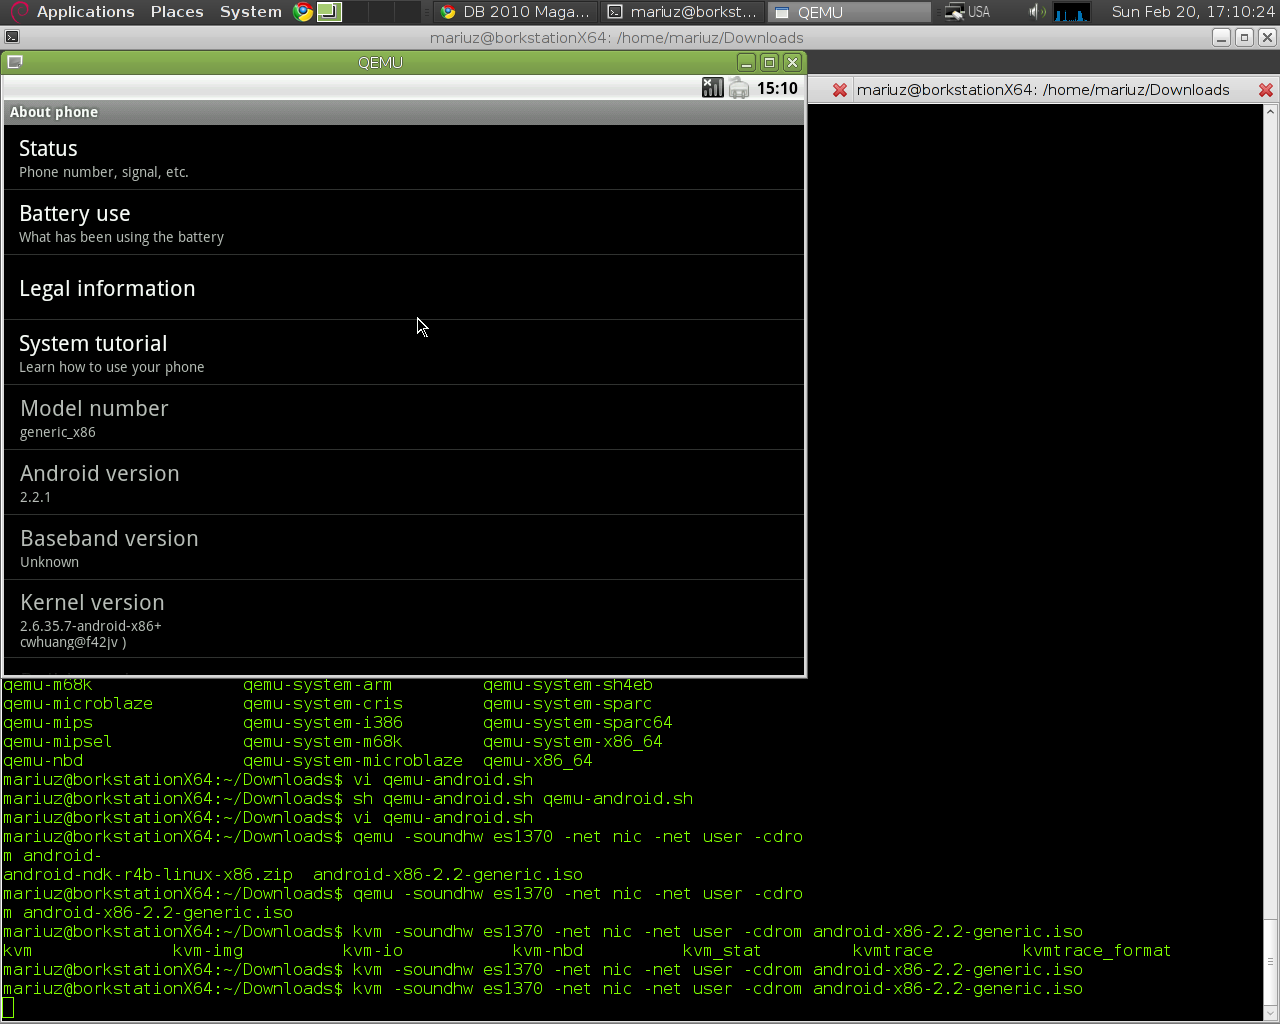 Mariuz's Blog: testing android-x86 with kvm-linux